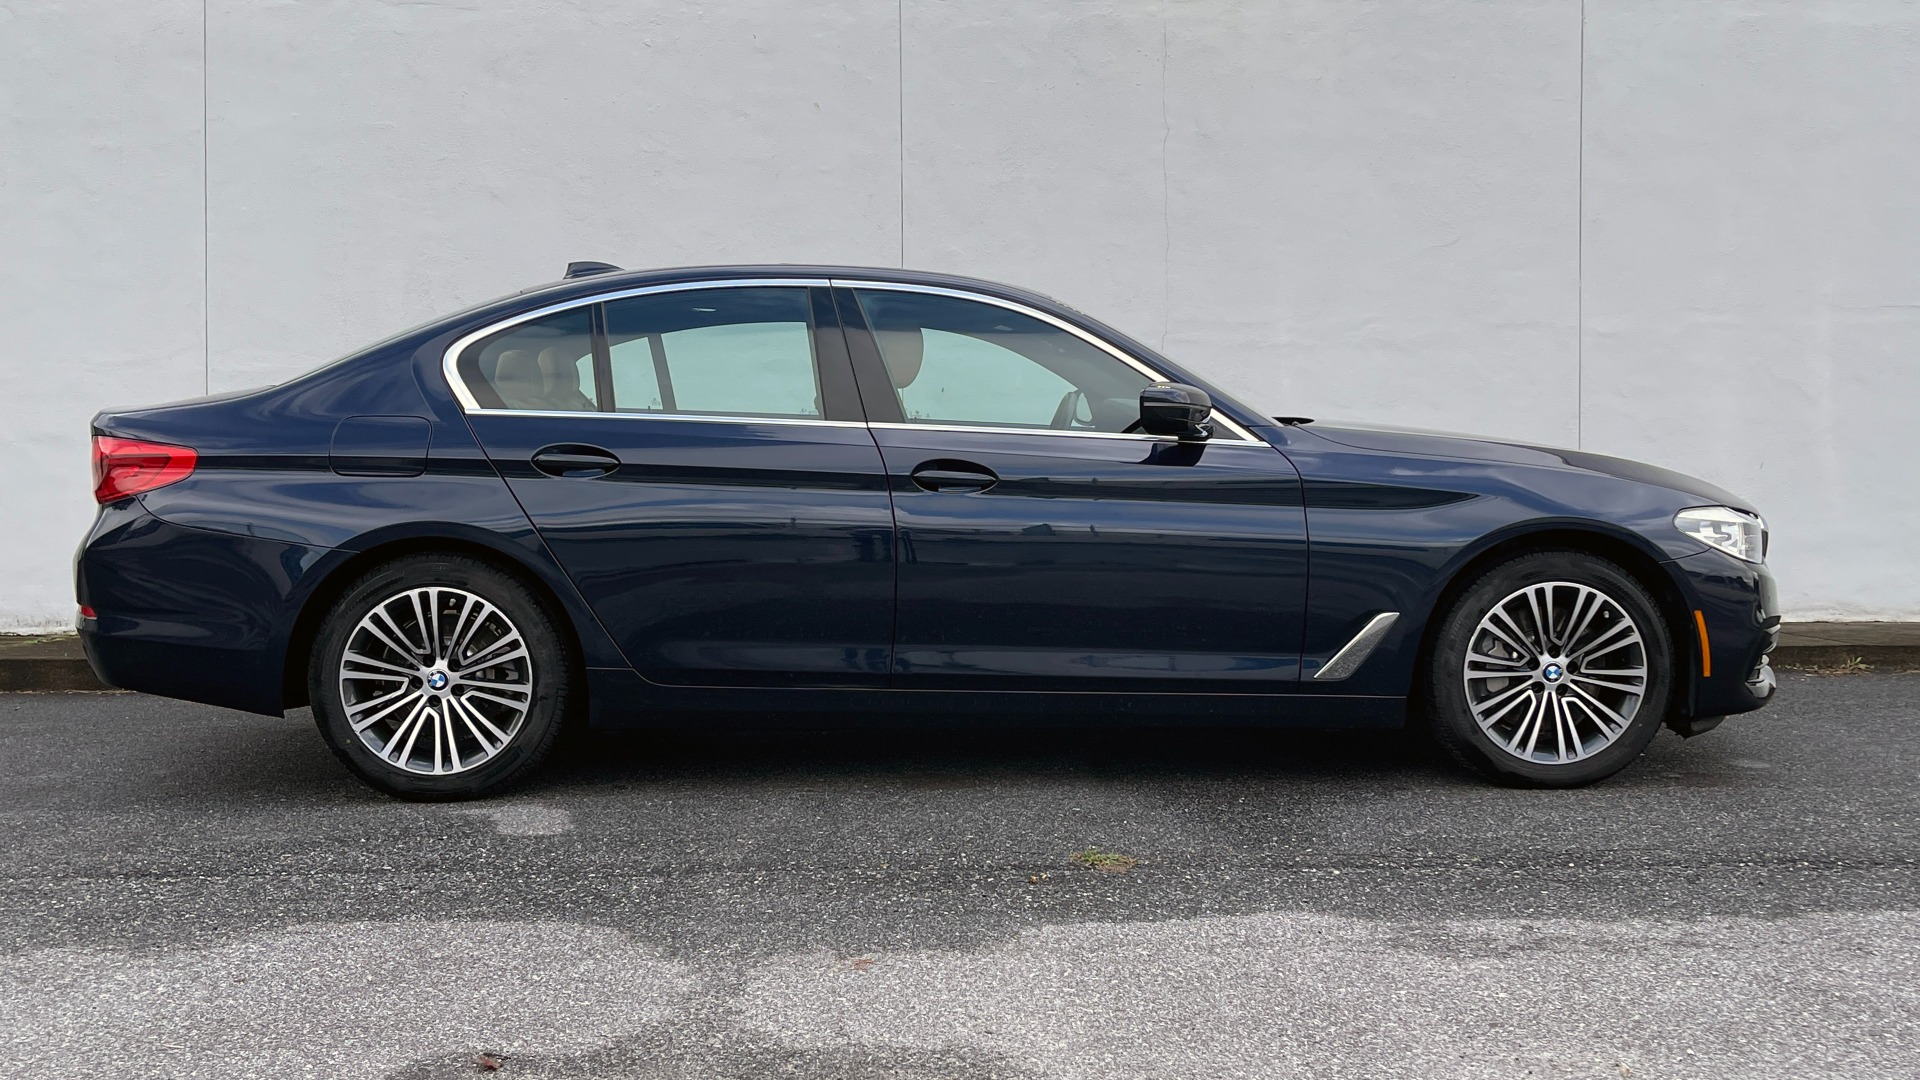 Used 2019 BMW 5 SERIES 530I XDRIVE / CONV PKG / PDC / NAV / SUNROOF / HTD STS / REARIEW for sale $39,595 at Formula Imports in Charlotte NC 28227 3